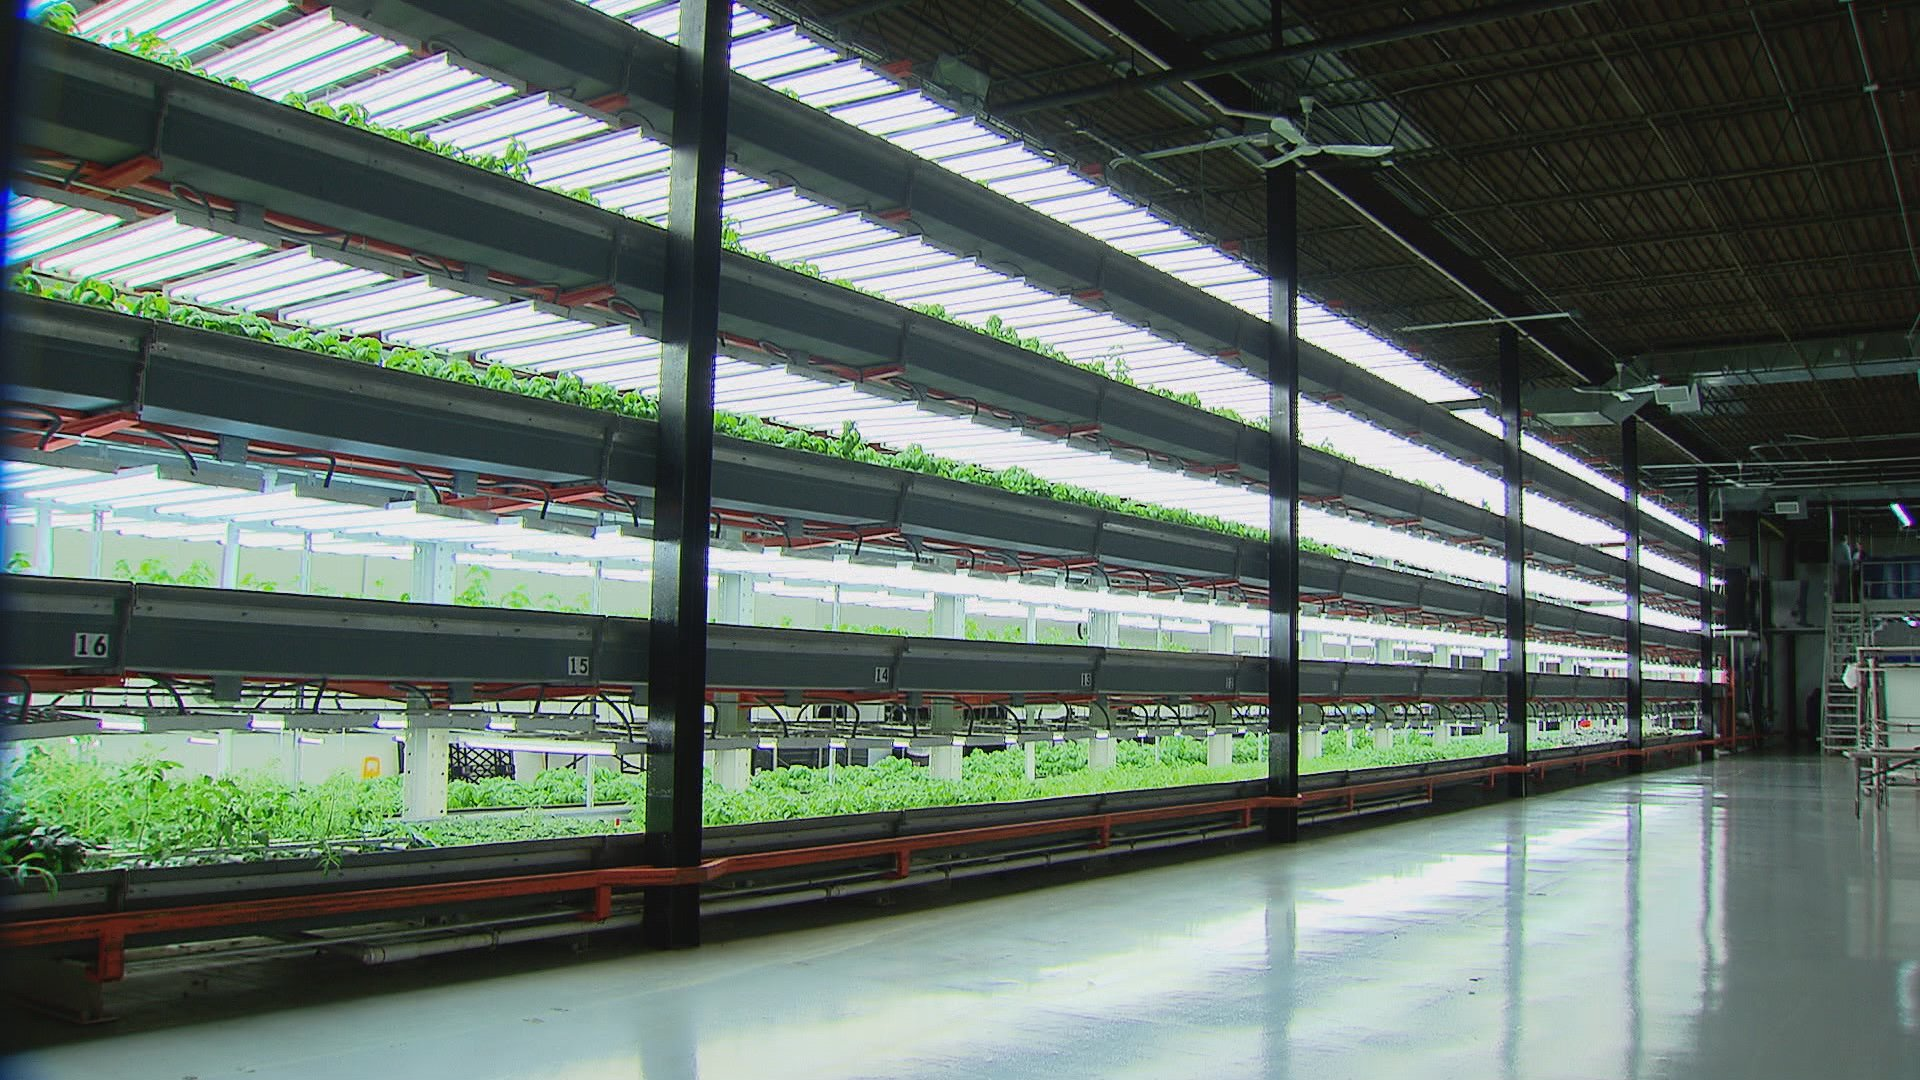 Vertical farming s rise in chicago chicago tonight wttw for Indoor fish farming